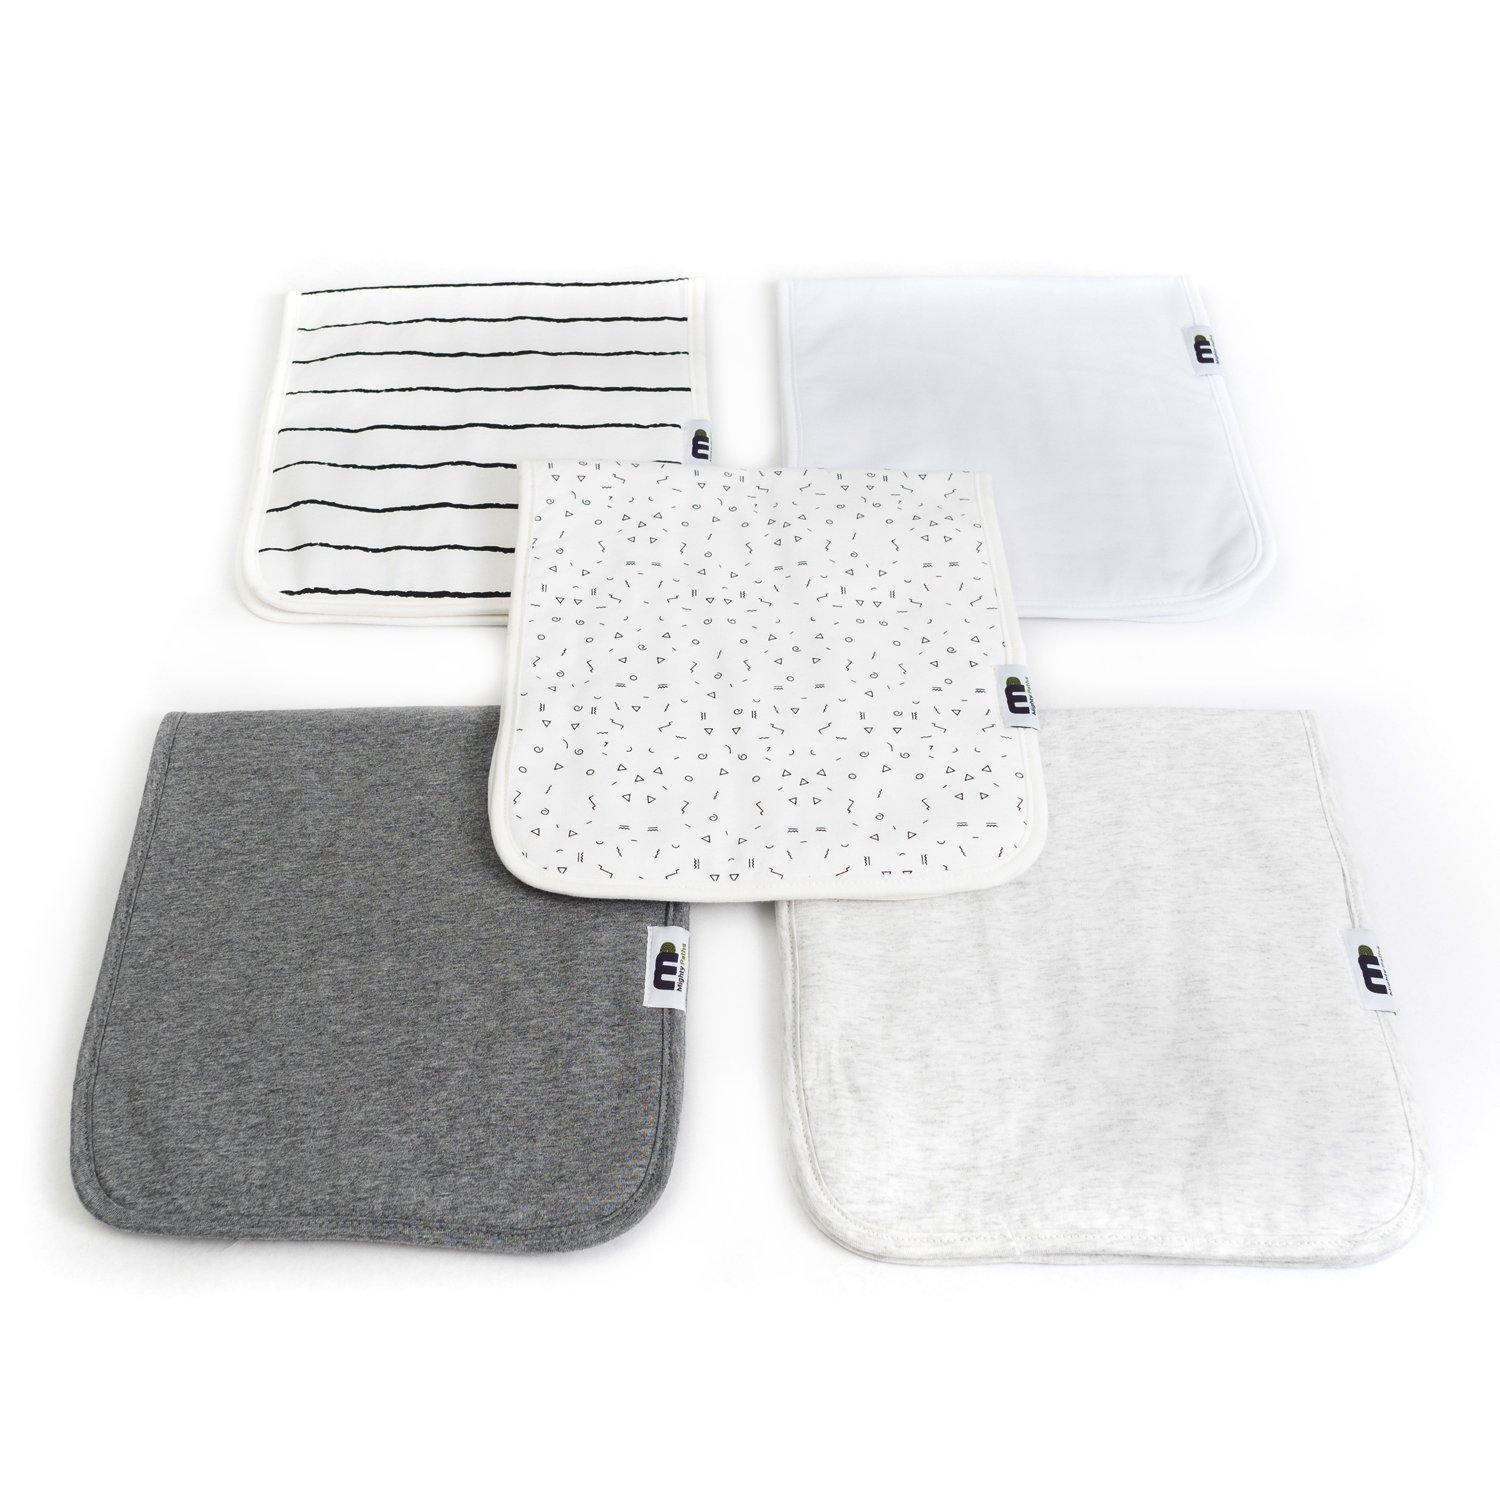 Baby Burp Cloths for Boys and Girls 5 Pack Triple Layer Burp Cloths Unisex Burping Cloths Thick Absorbent Burp Rags 100% Organic Large Soft Cotton Towels Gift Set for Baby Shower by Mighty Paths